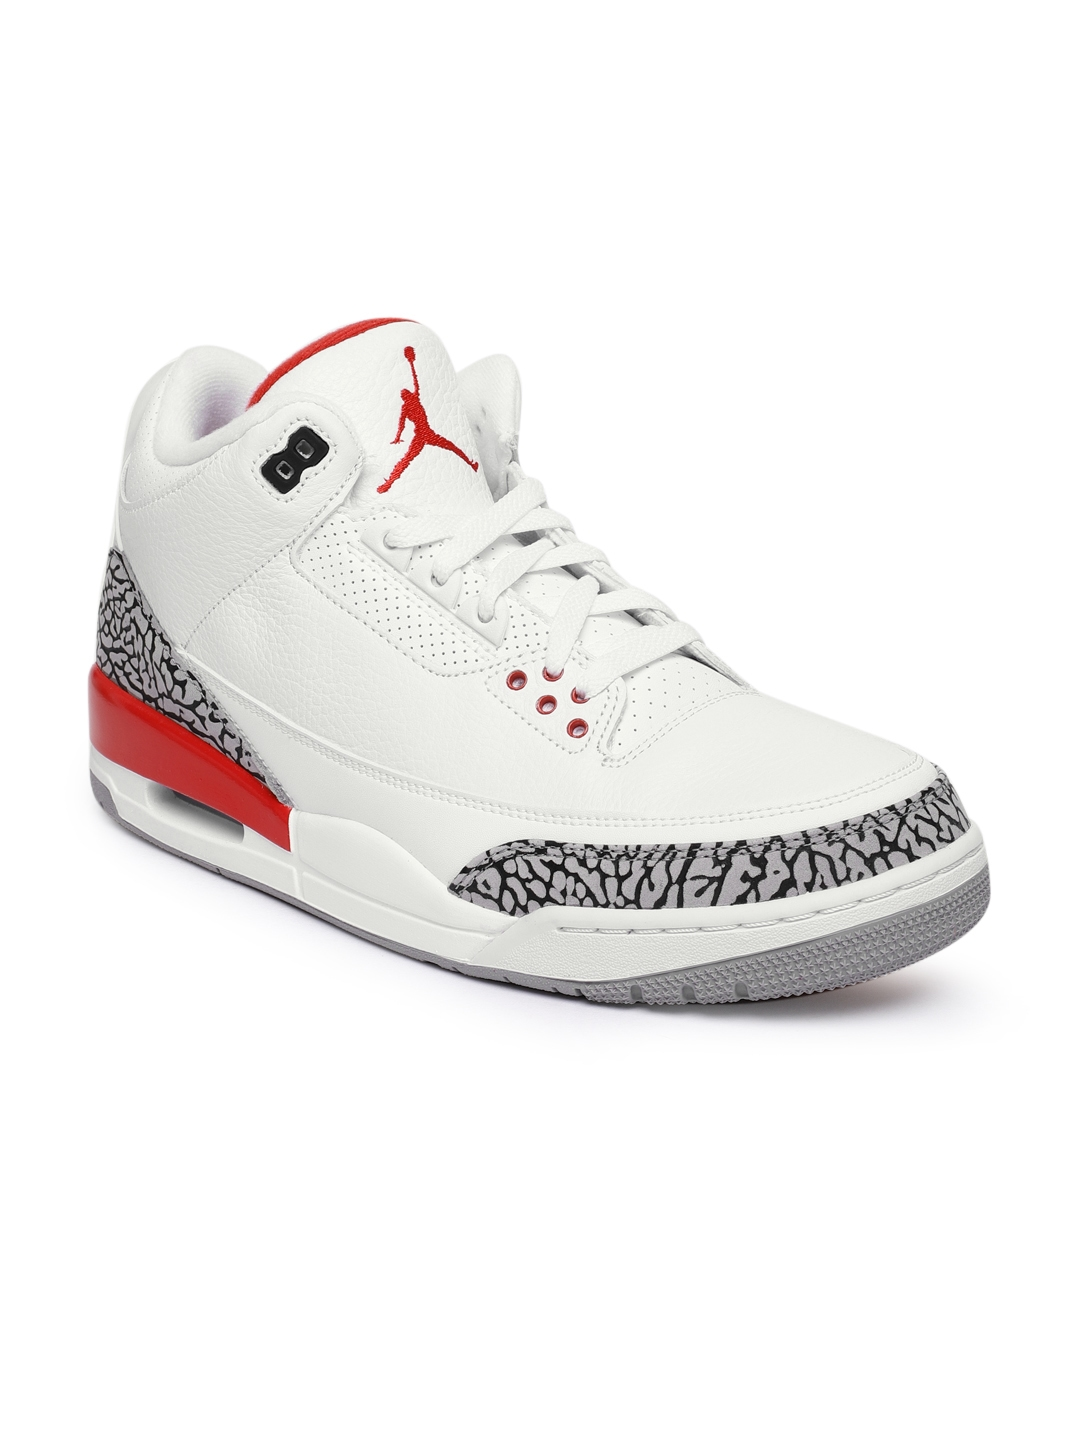 b78d2cfbaf41d3 Buy Nike Men White Air Jordan 3 Retro Leather Basketball Shoes ...